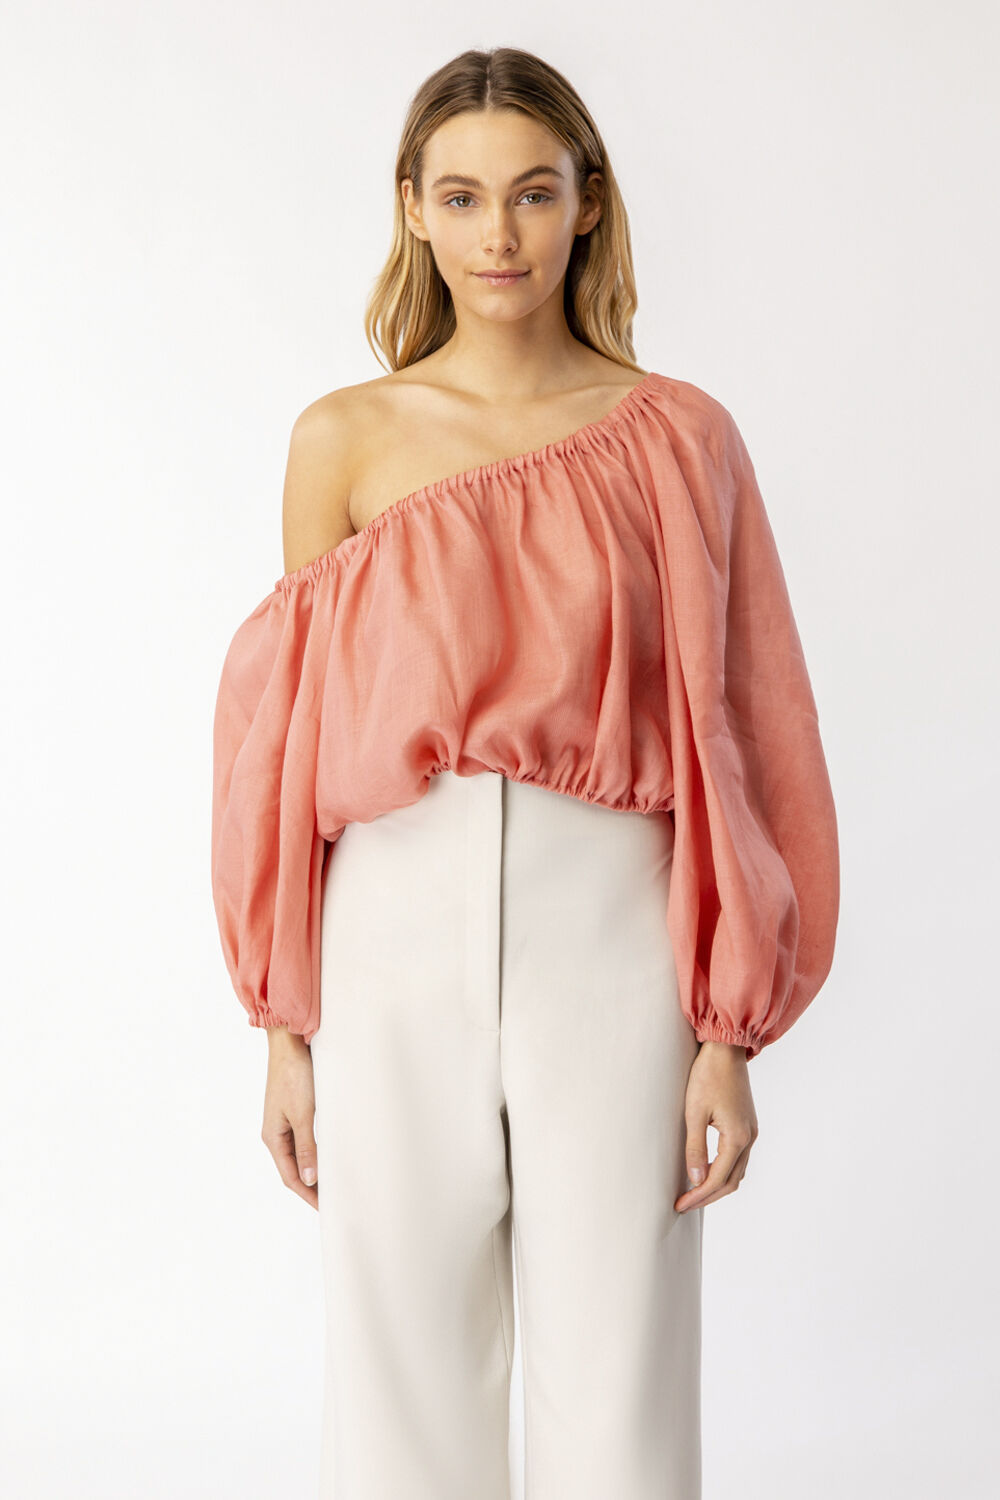 GIANNI ONE SHOULDER TOP in colour CORAL CLOUD